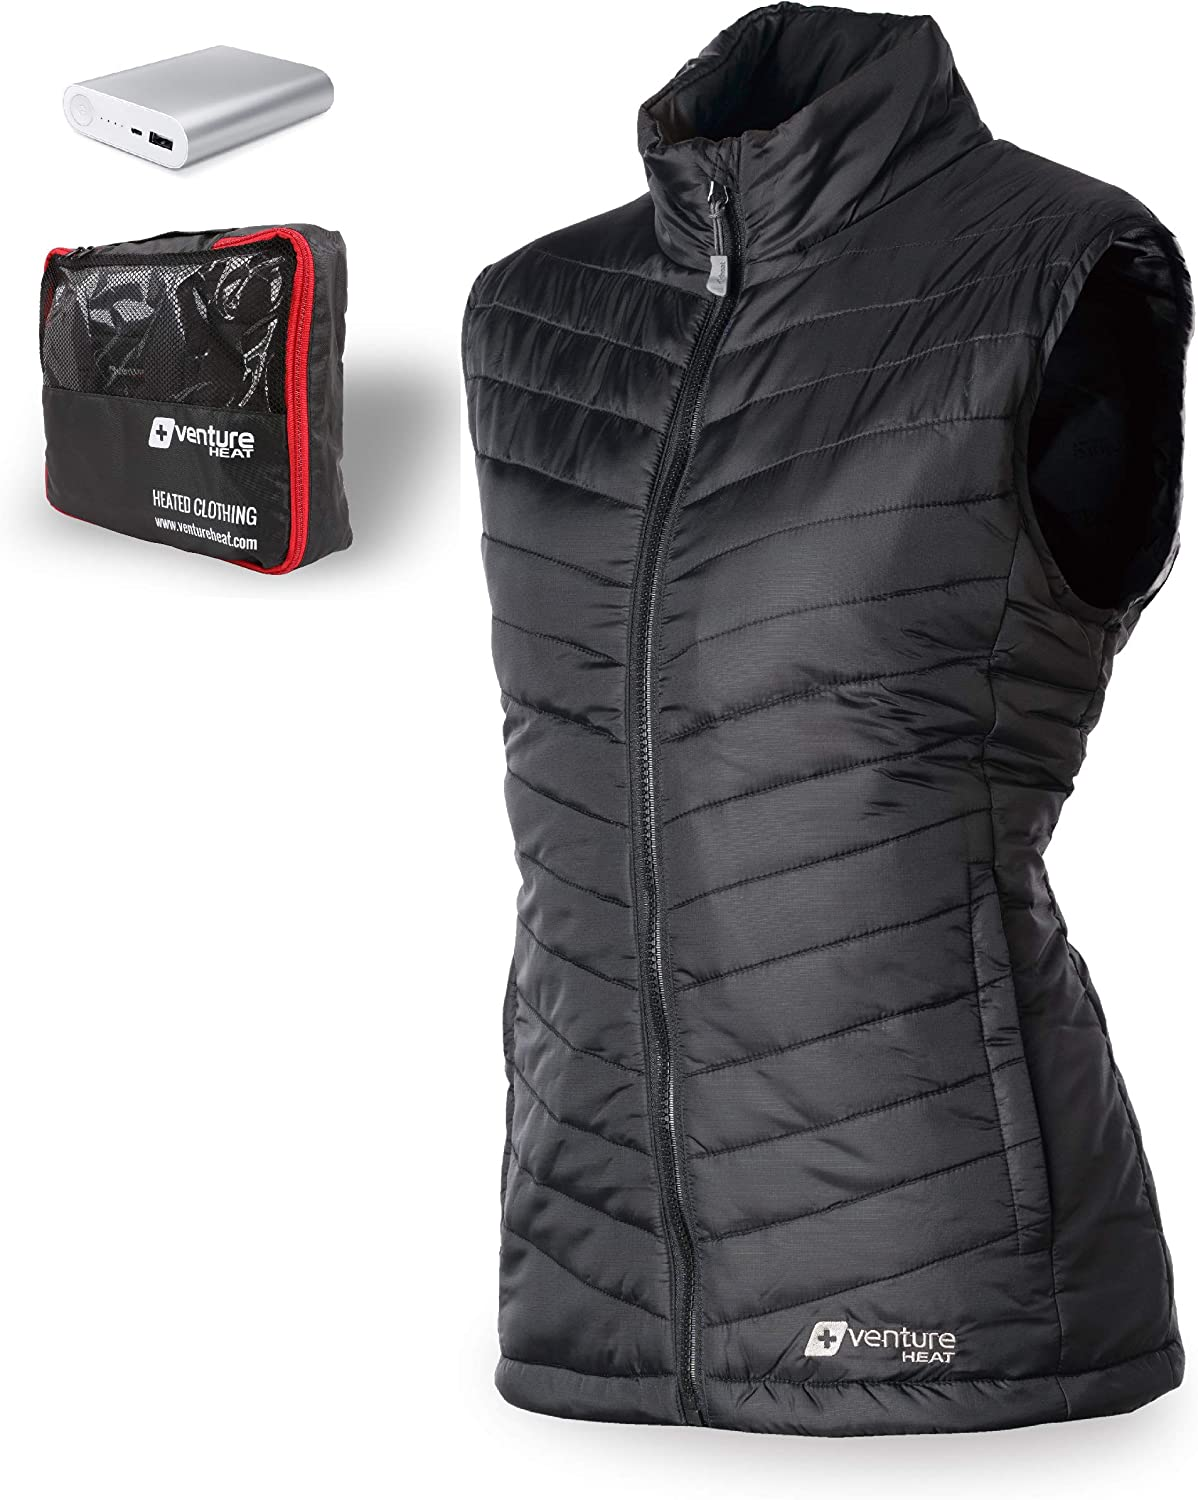 Venture Heat Women's Heated Vest with Battery 12 Hour - The Roam Puffer Heated Vest for Women, USB Powered